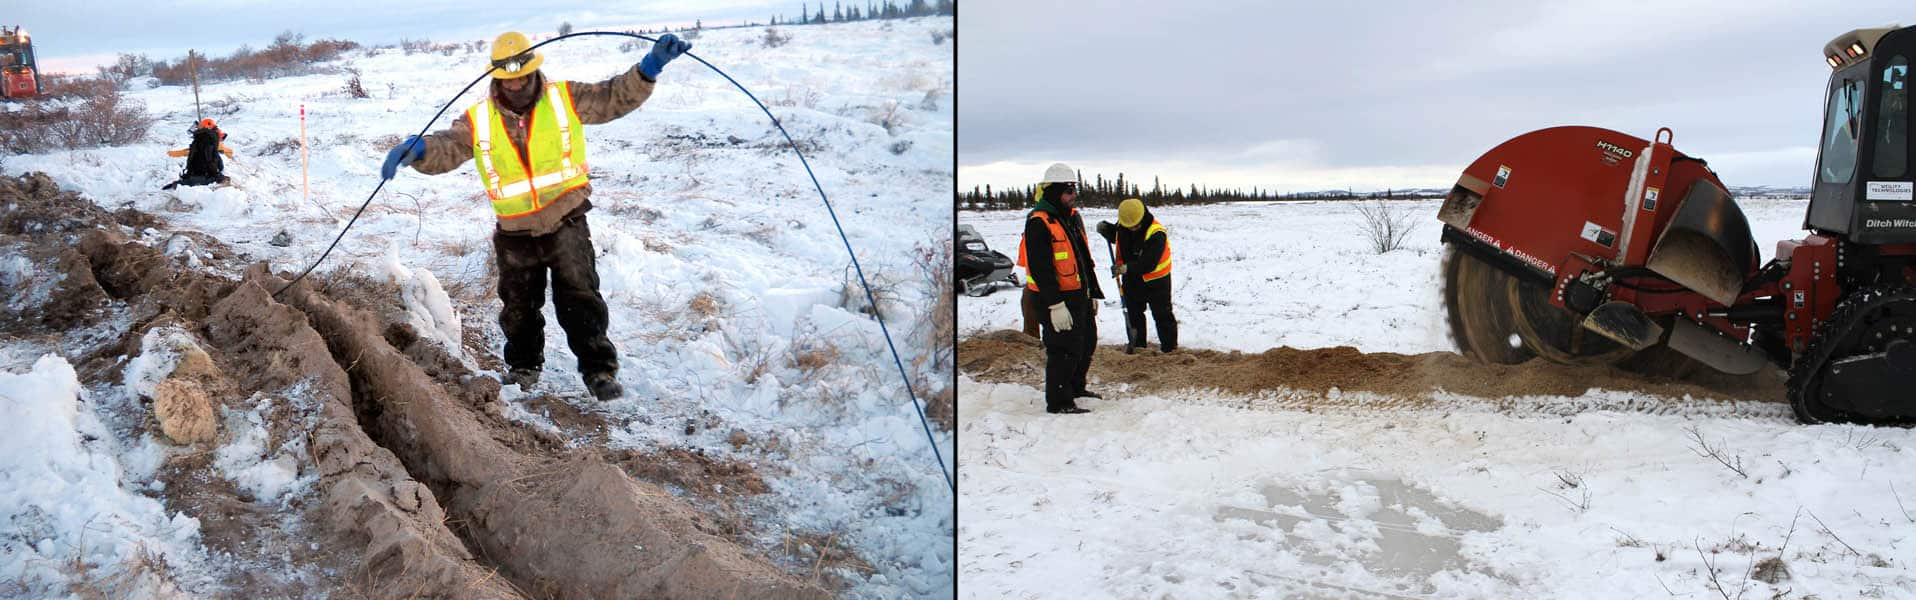 Workers from the Ledcor Group, who received money from the American Reinvestment and Recovery Act  for broadband expansion, install cable linking Iguigig and Levelock, Alaska with fibre cable.